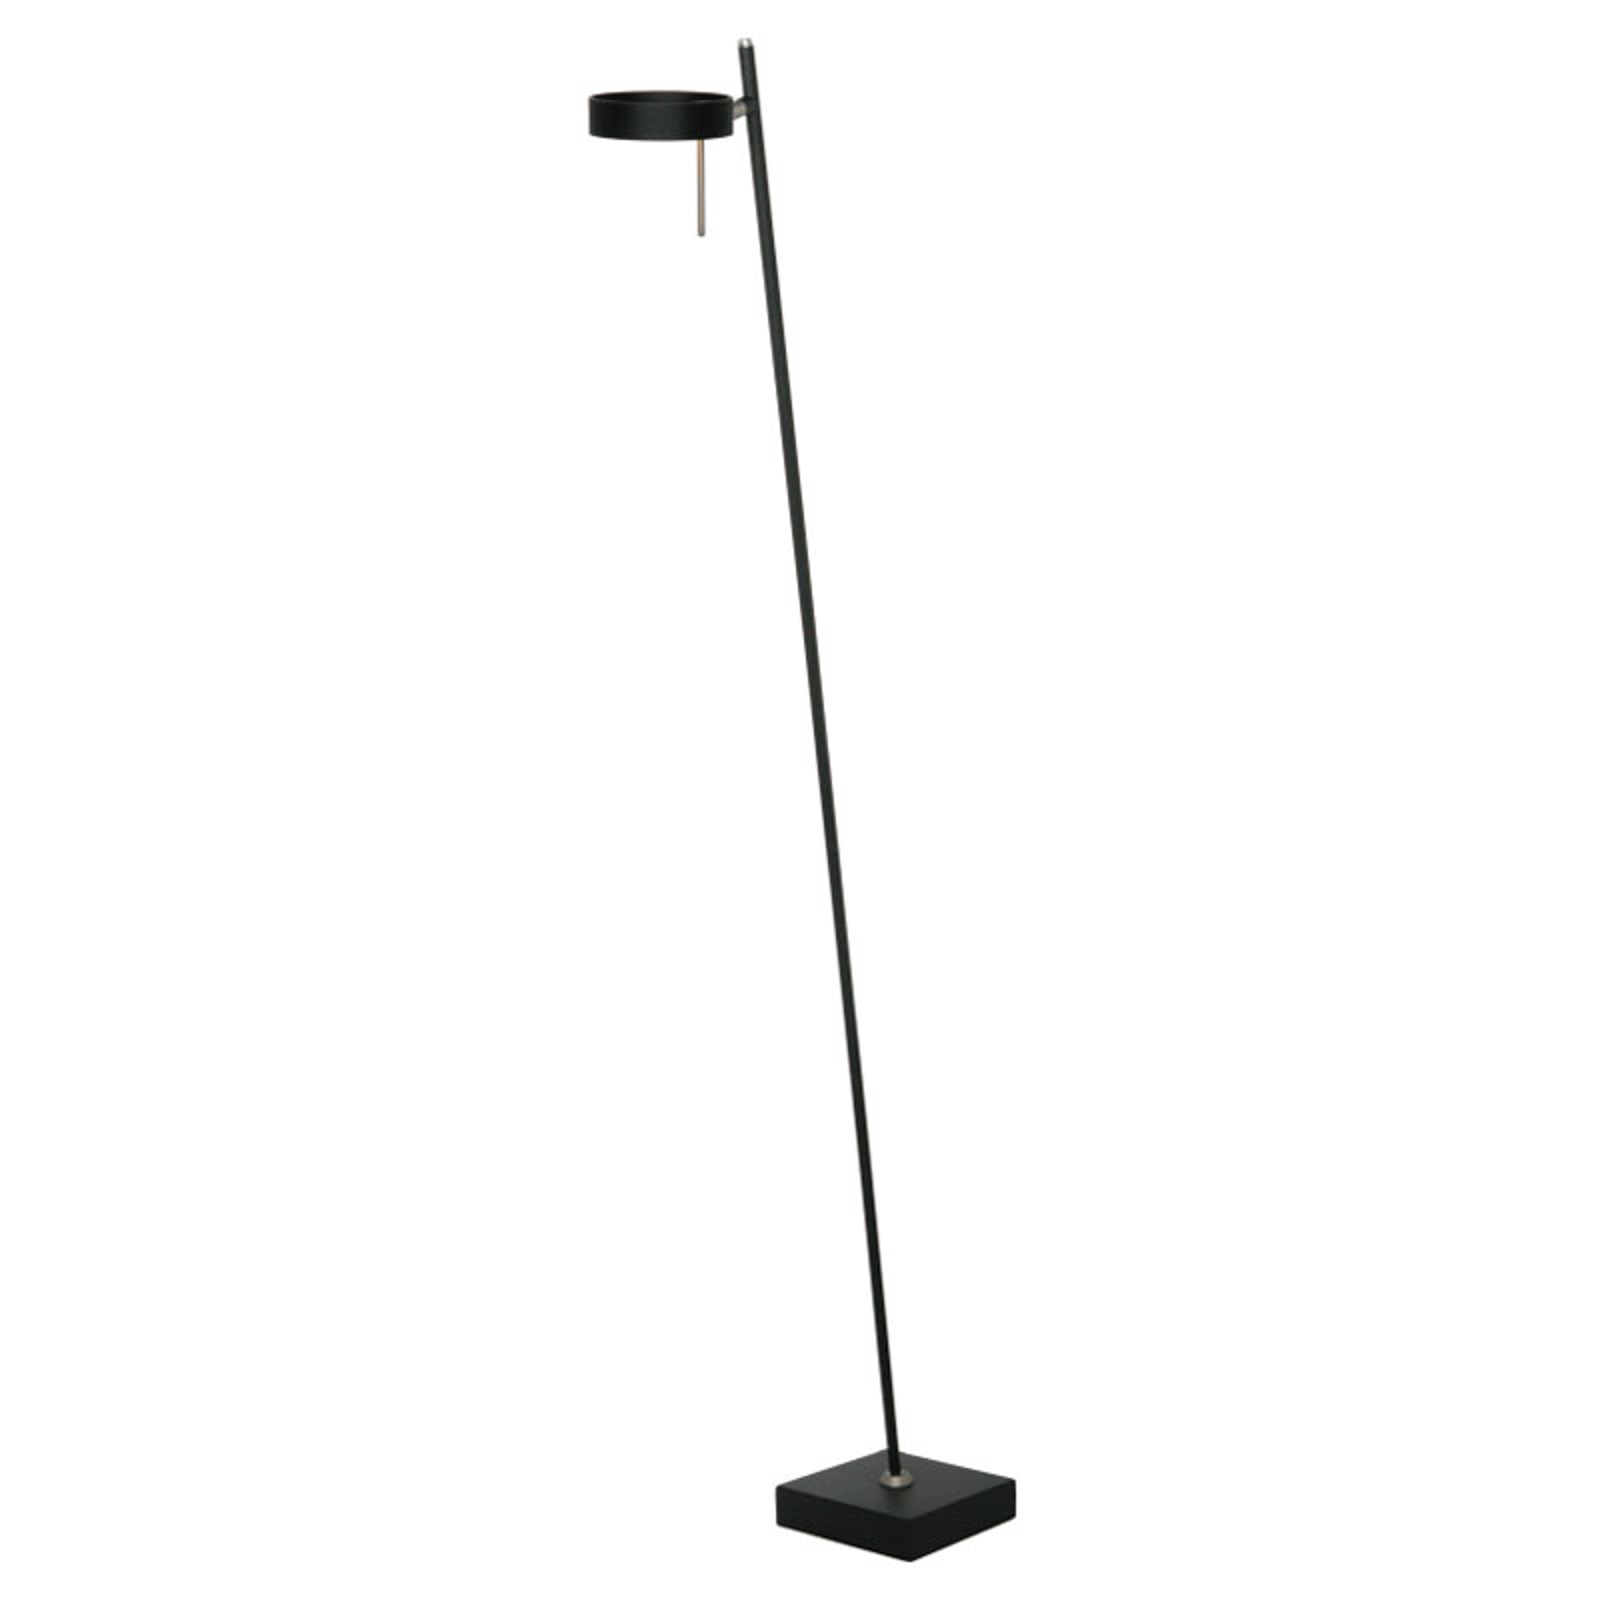 LED-Stehleuchte Bling, dimmbar